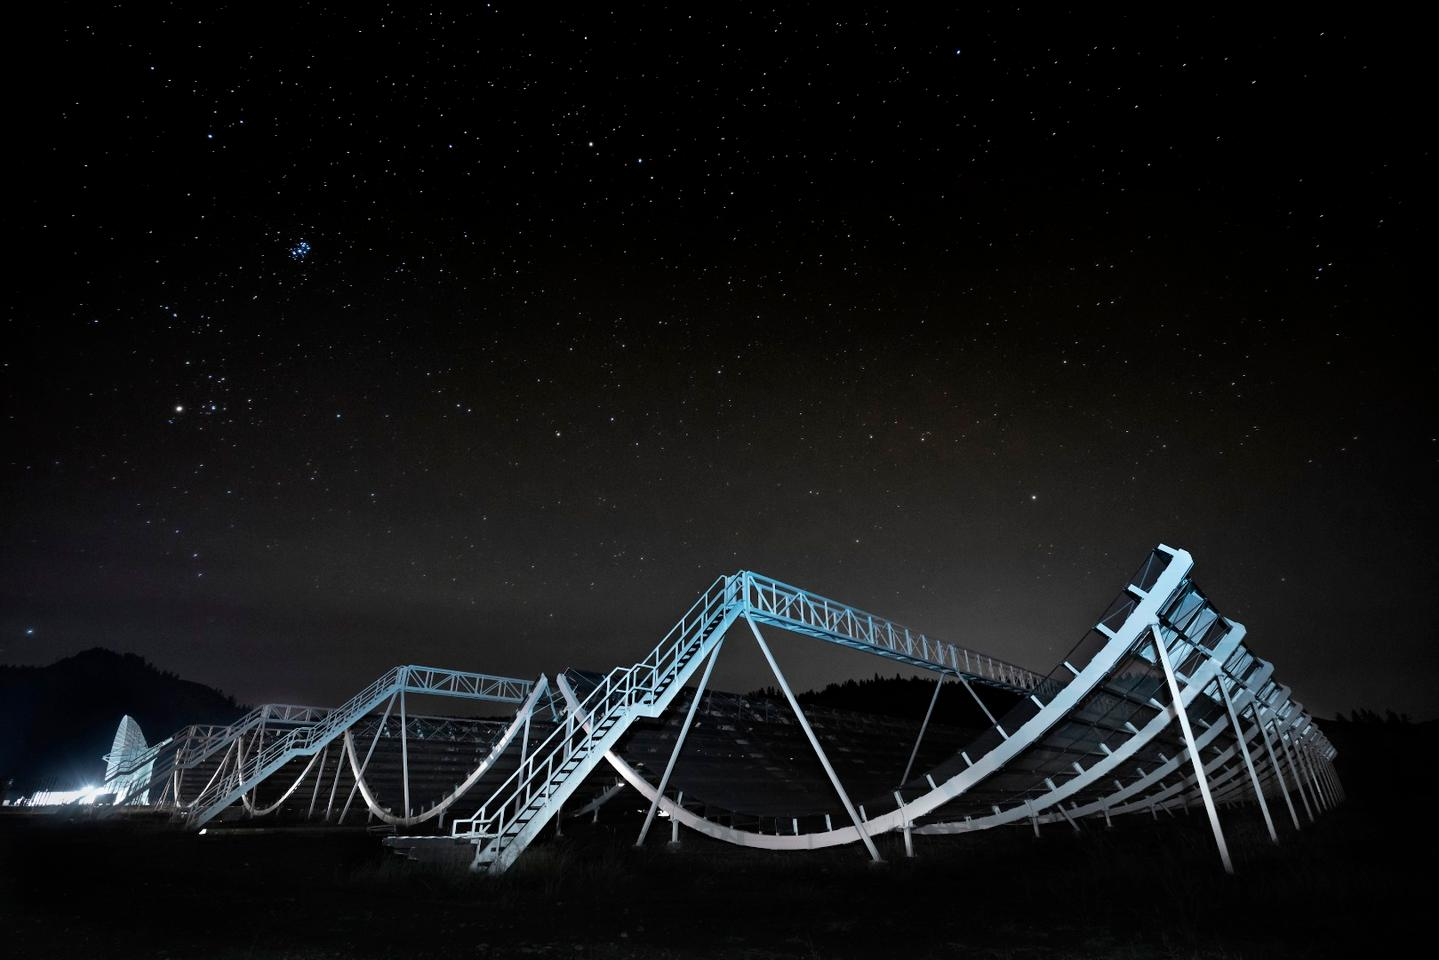 The revolutionary radio telescope CHIME has now detected 13 new fast radio burst signals, including a repeating one